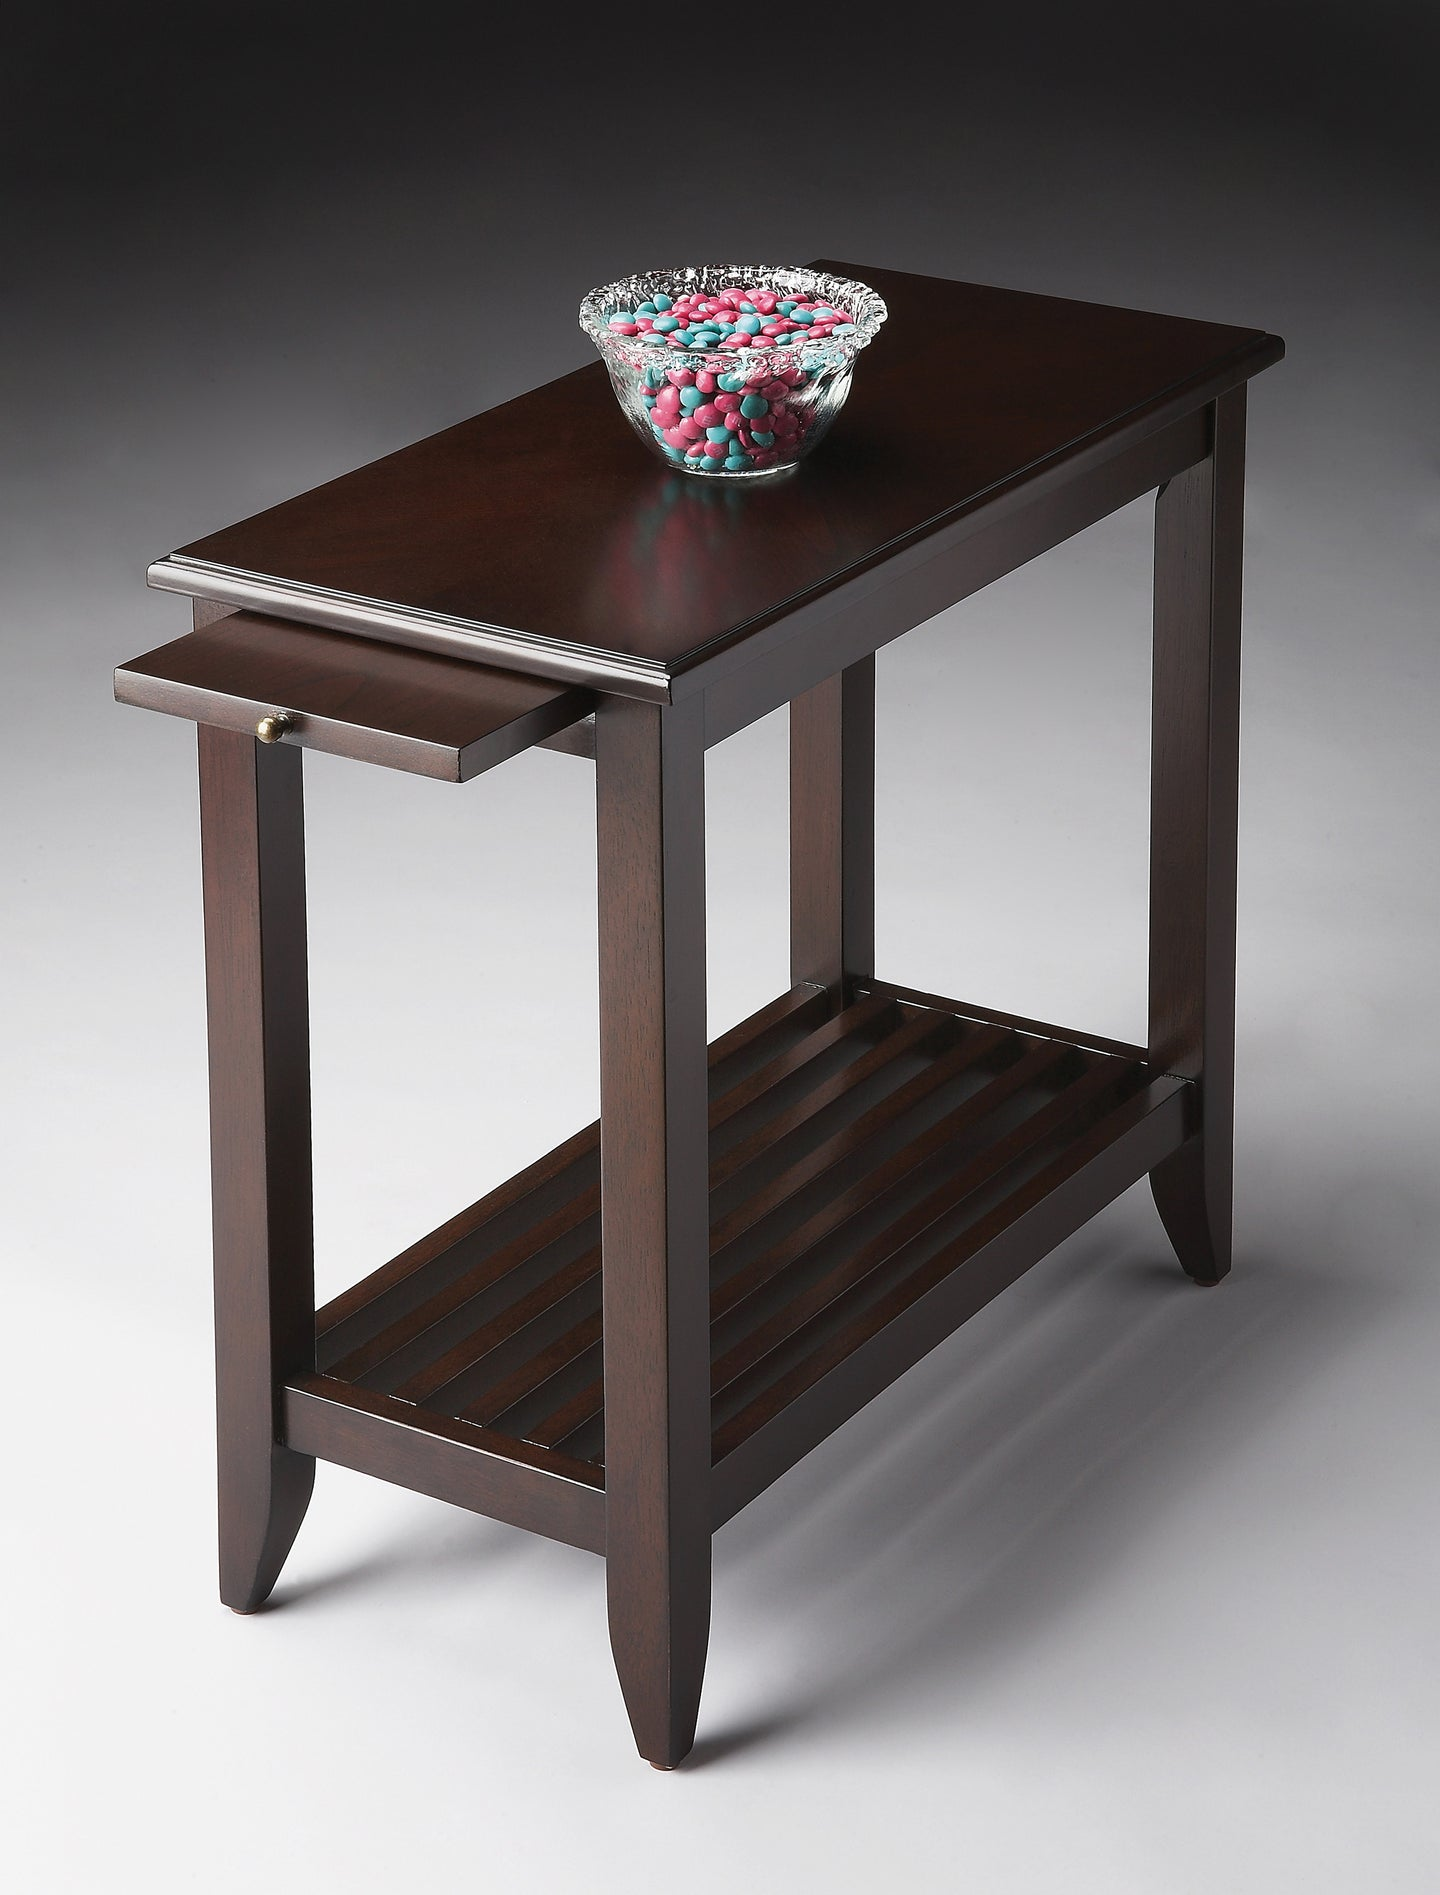 Irvine Merlot Chairside Table by Butler Specialty Company 3025022